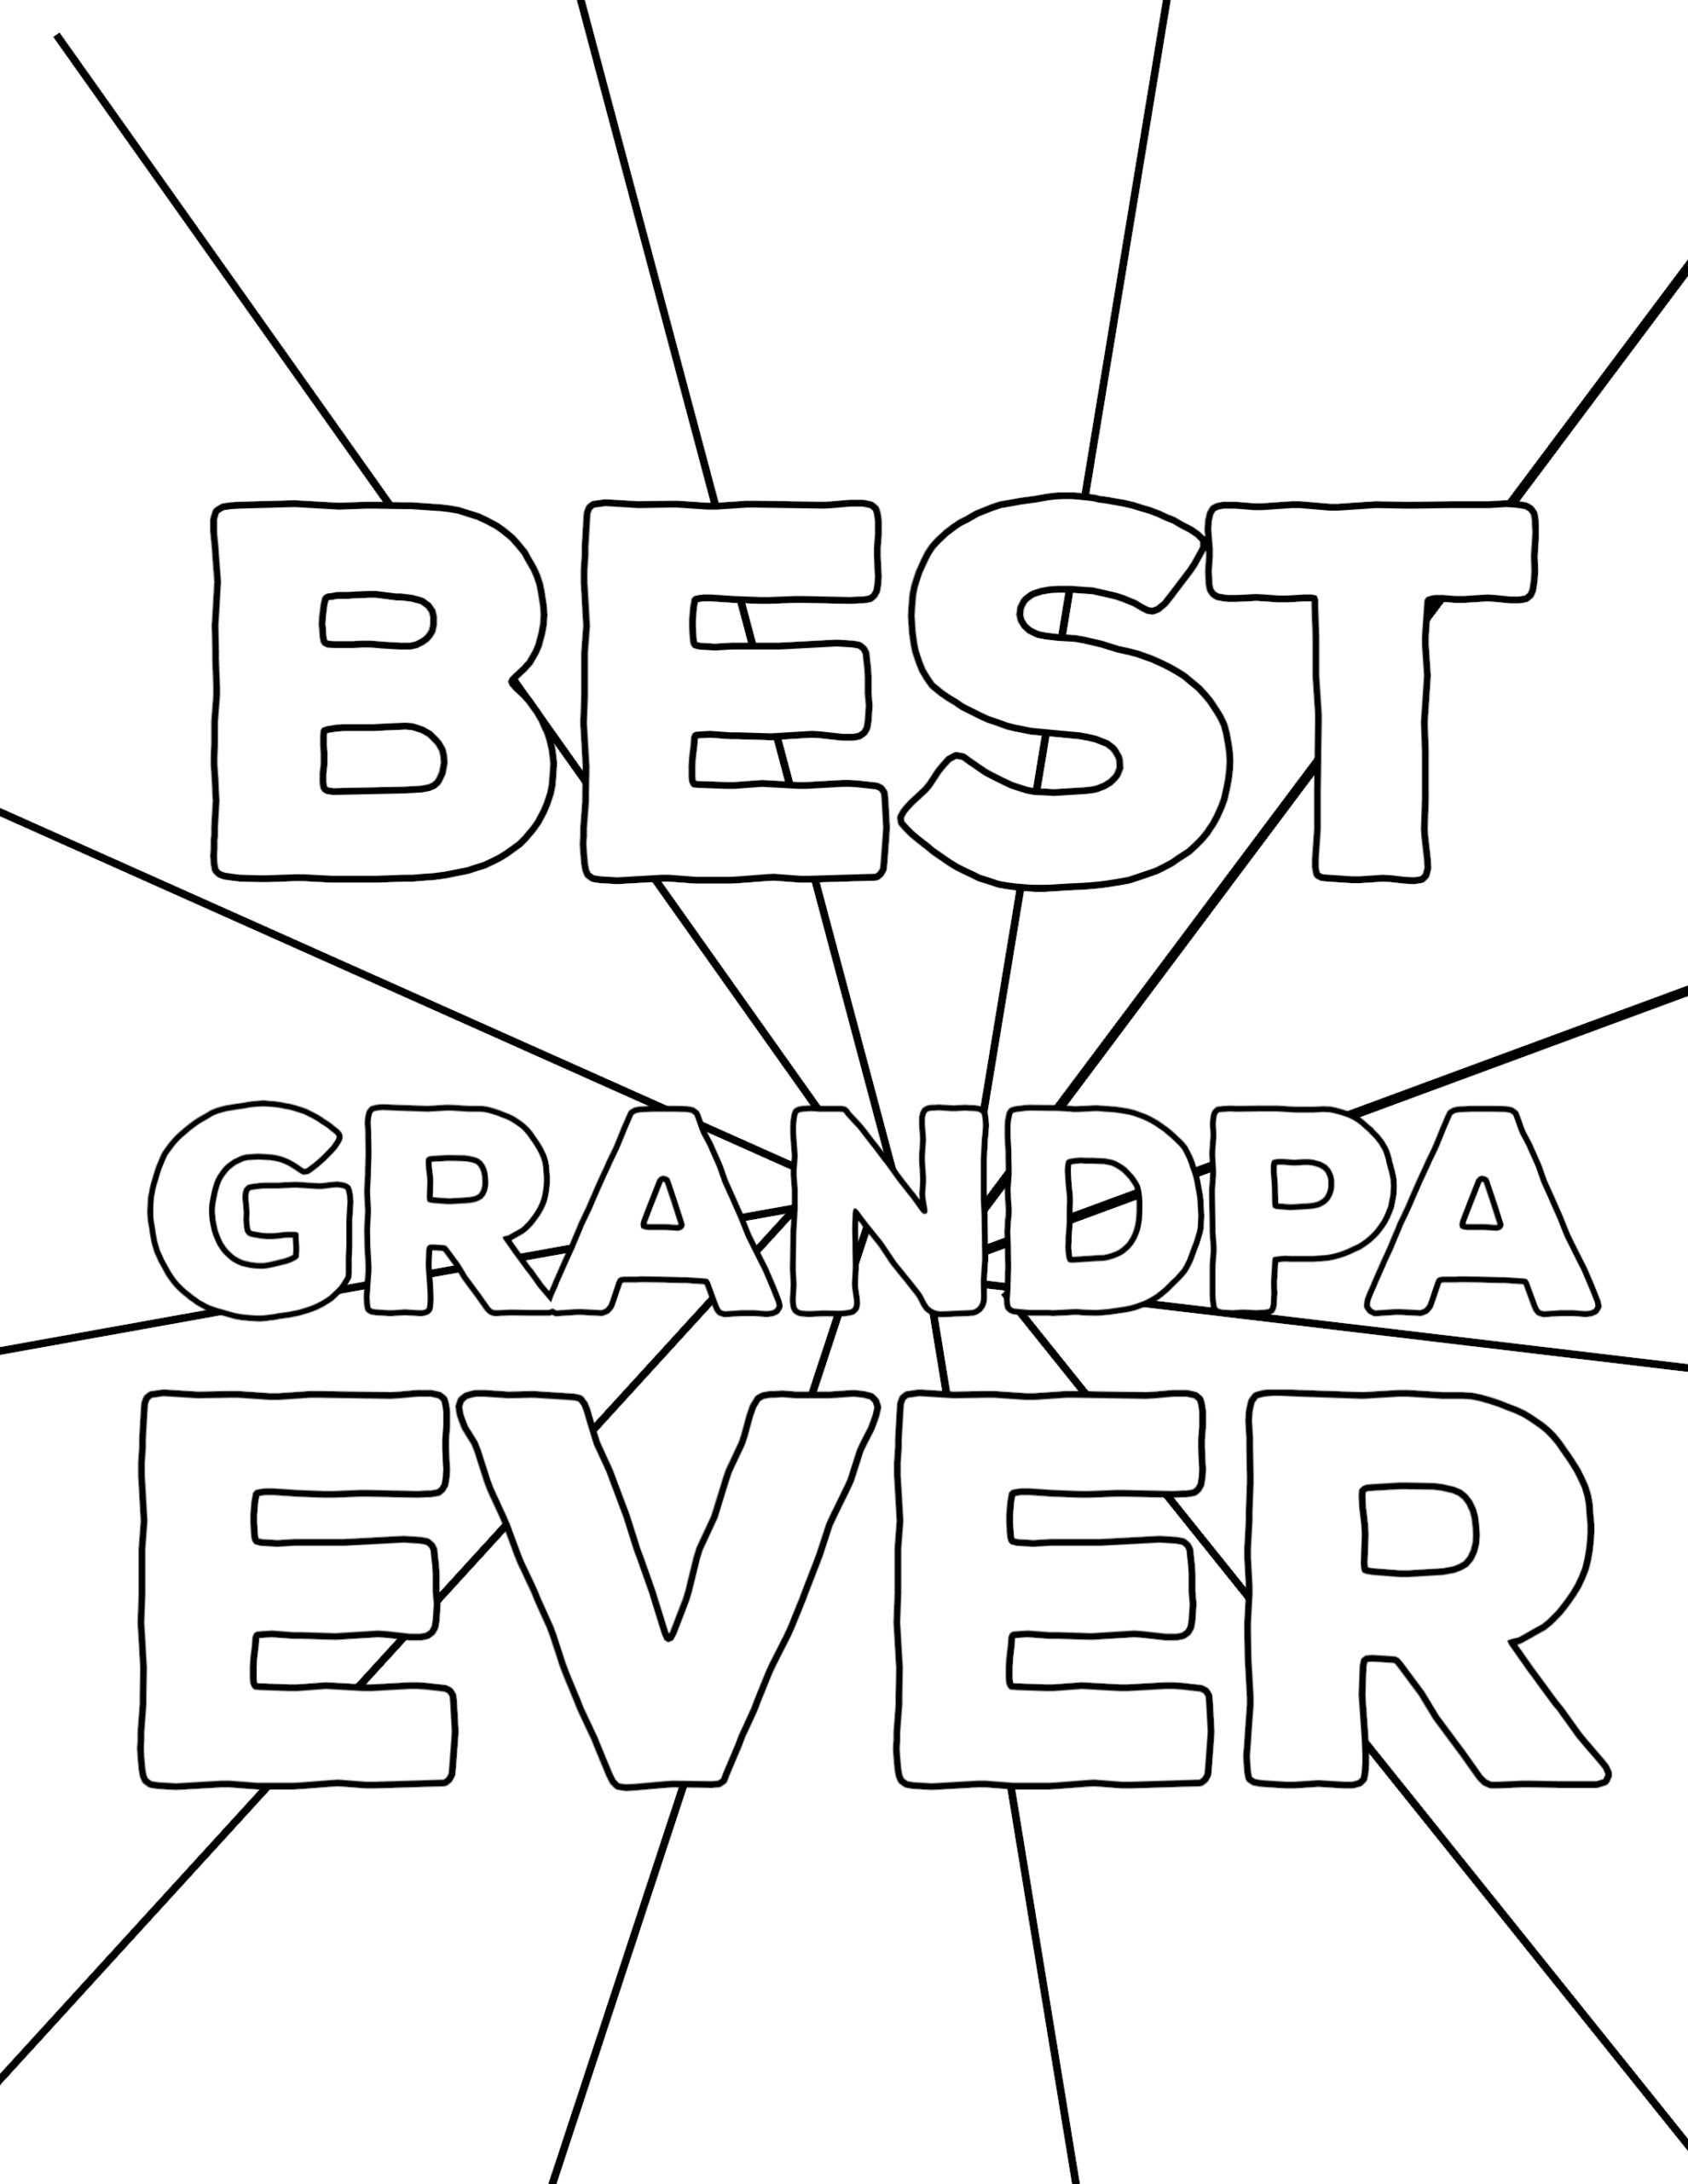 Best-Grandpa-Ever-Fathers-Day-Coloring-page.jpg 2,125 ...